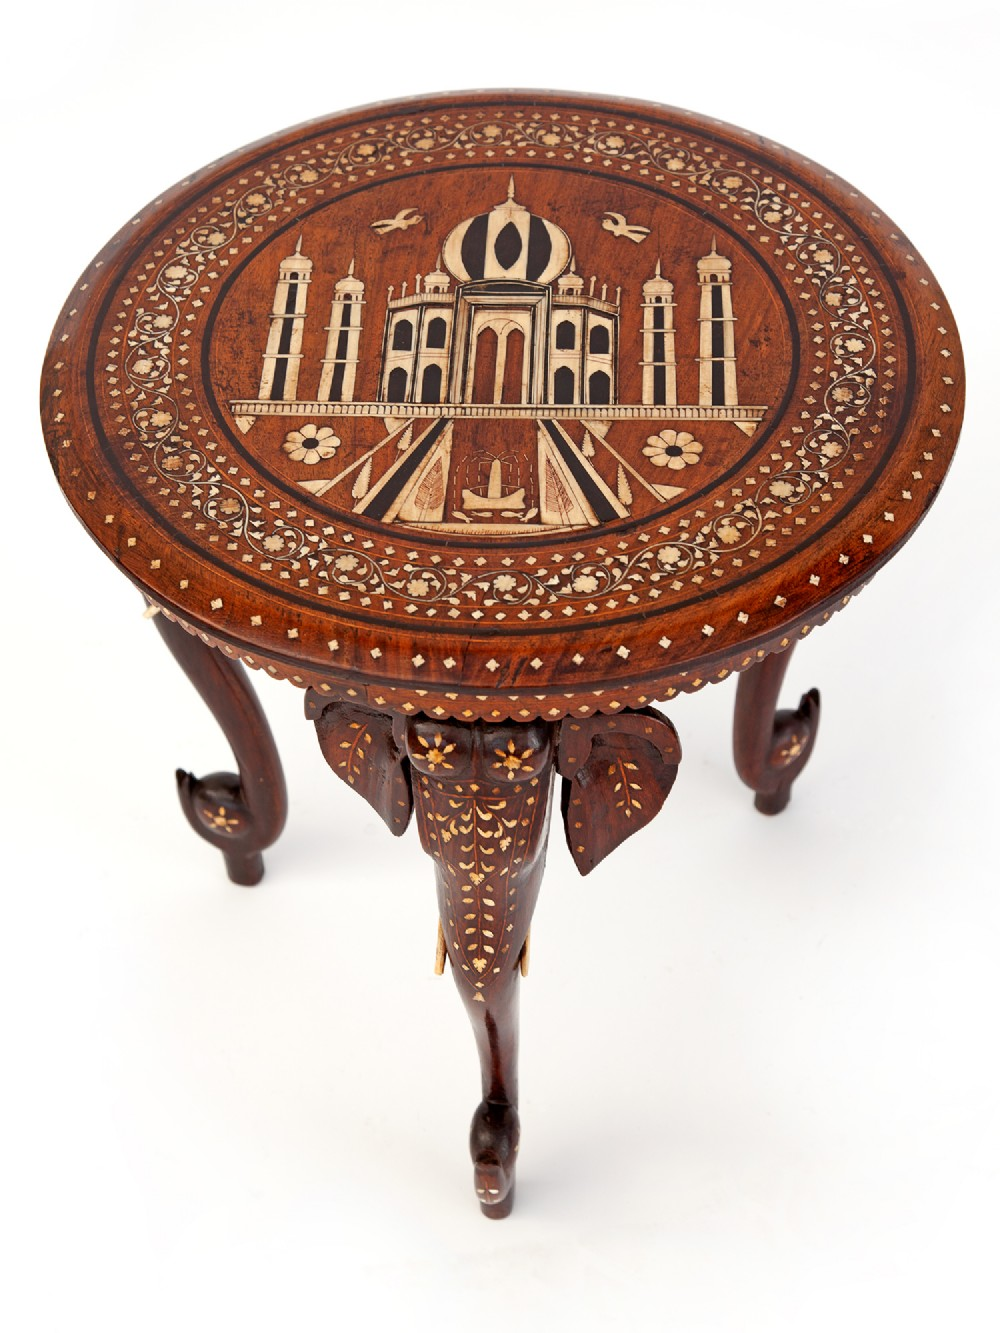 antique inlaid teak hoshiarpur elephant tripod taj mahal table